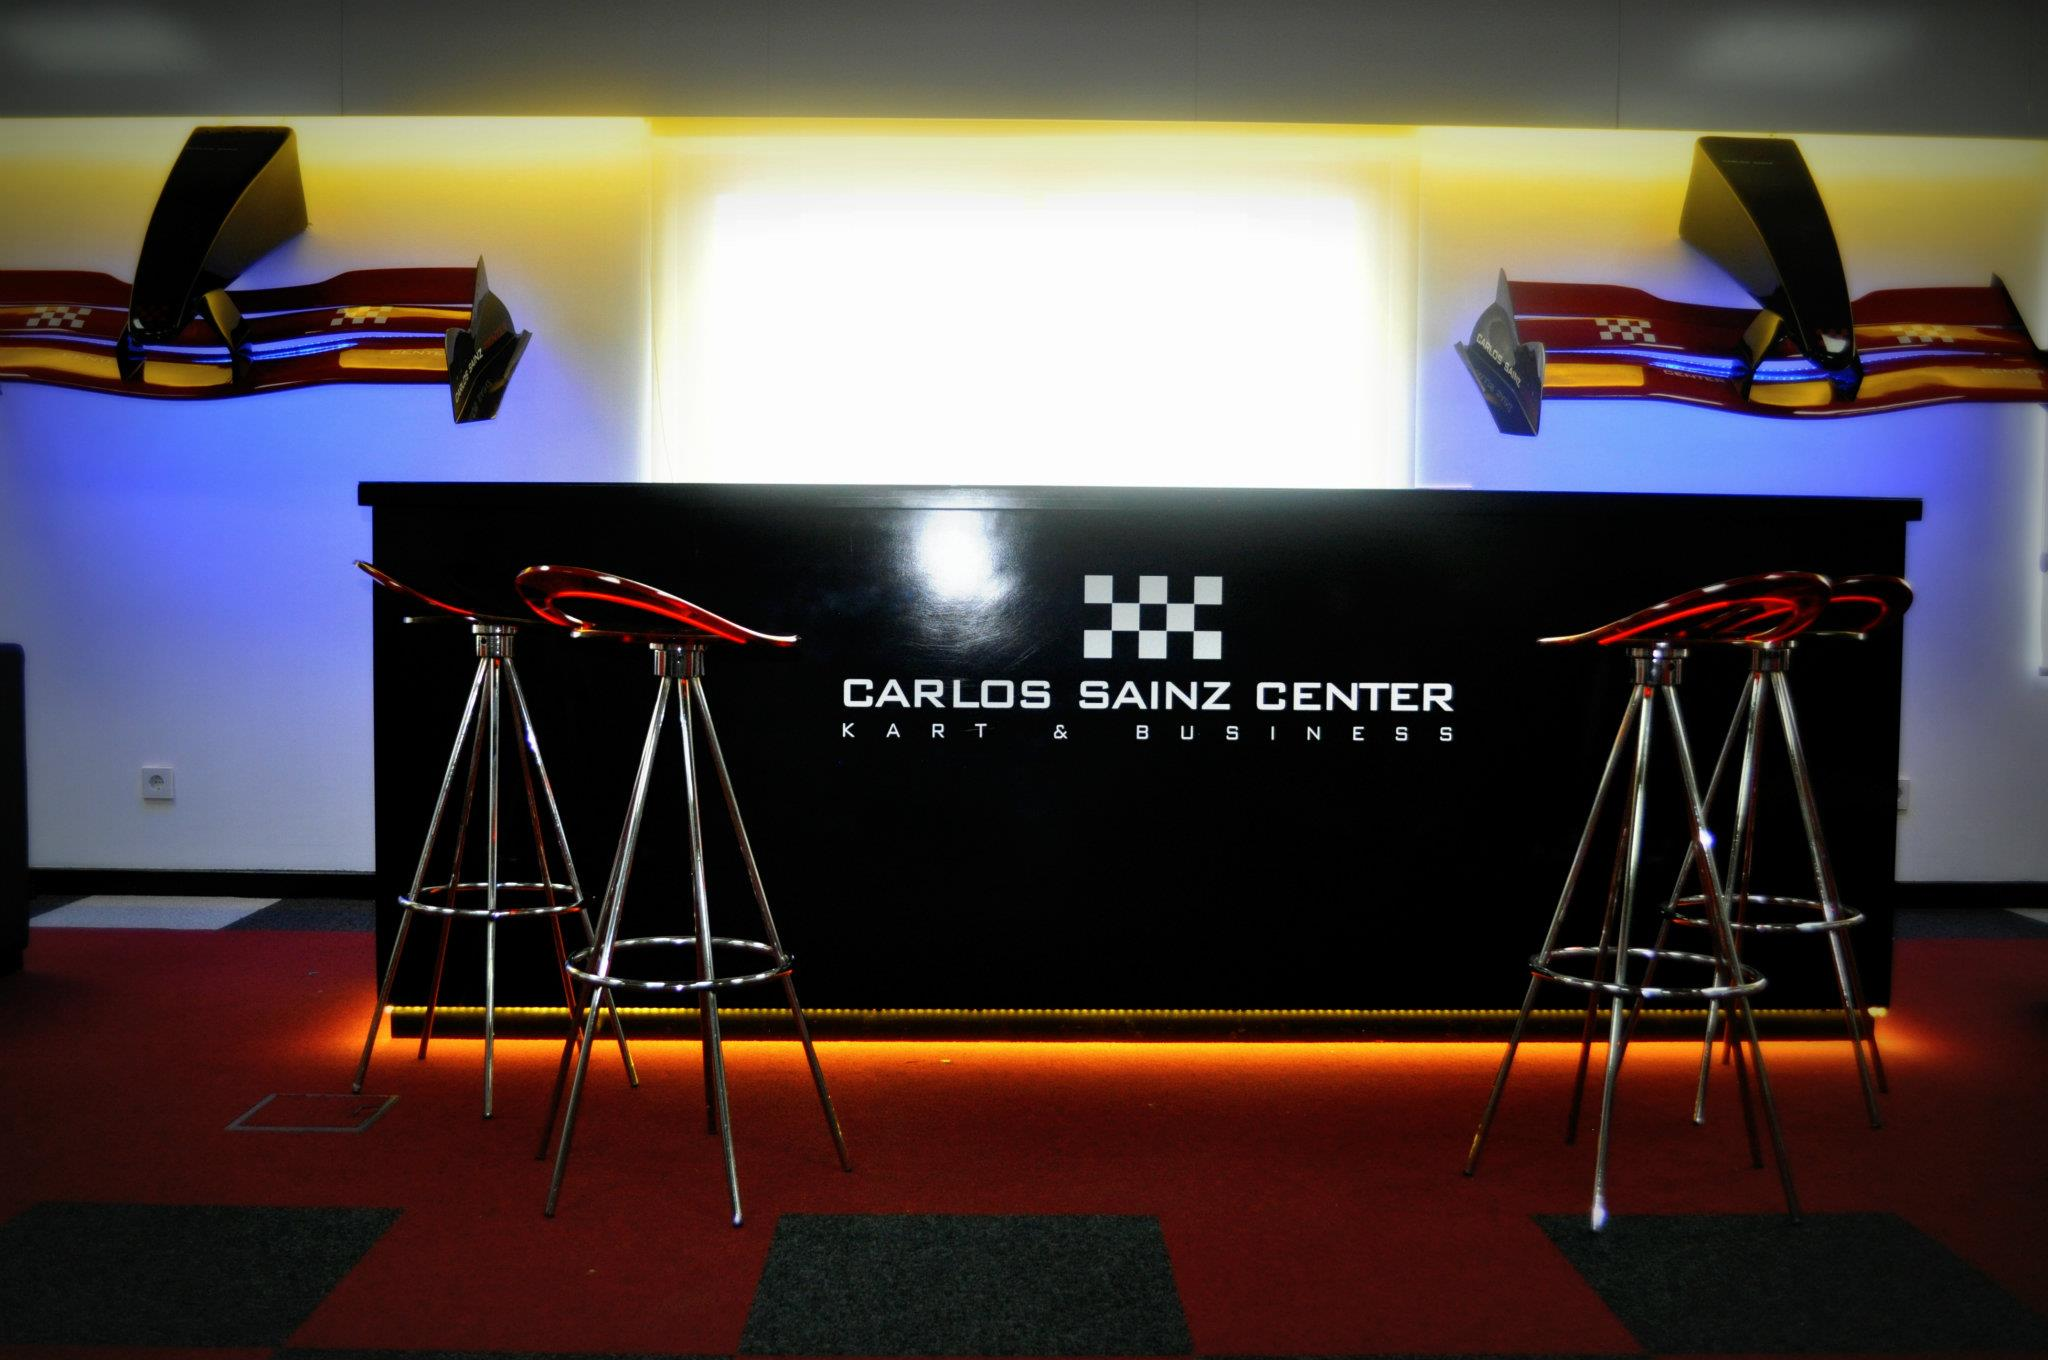 Carlos Sainz Center